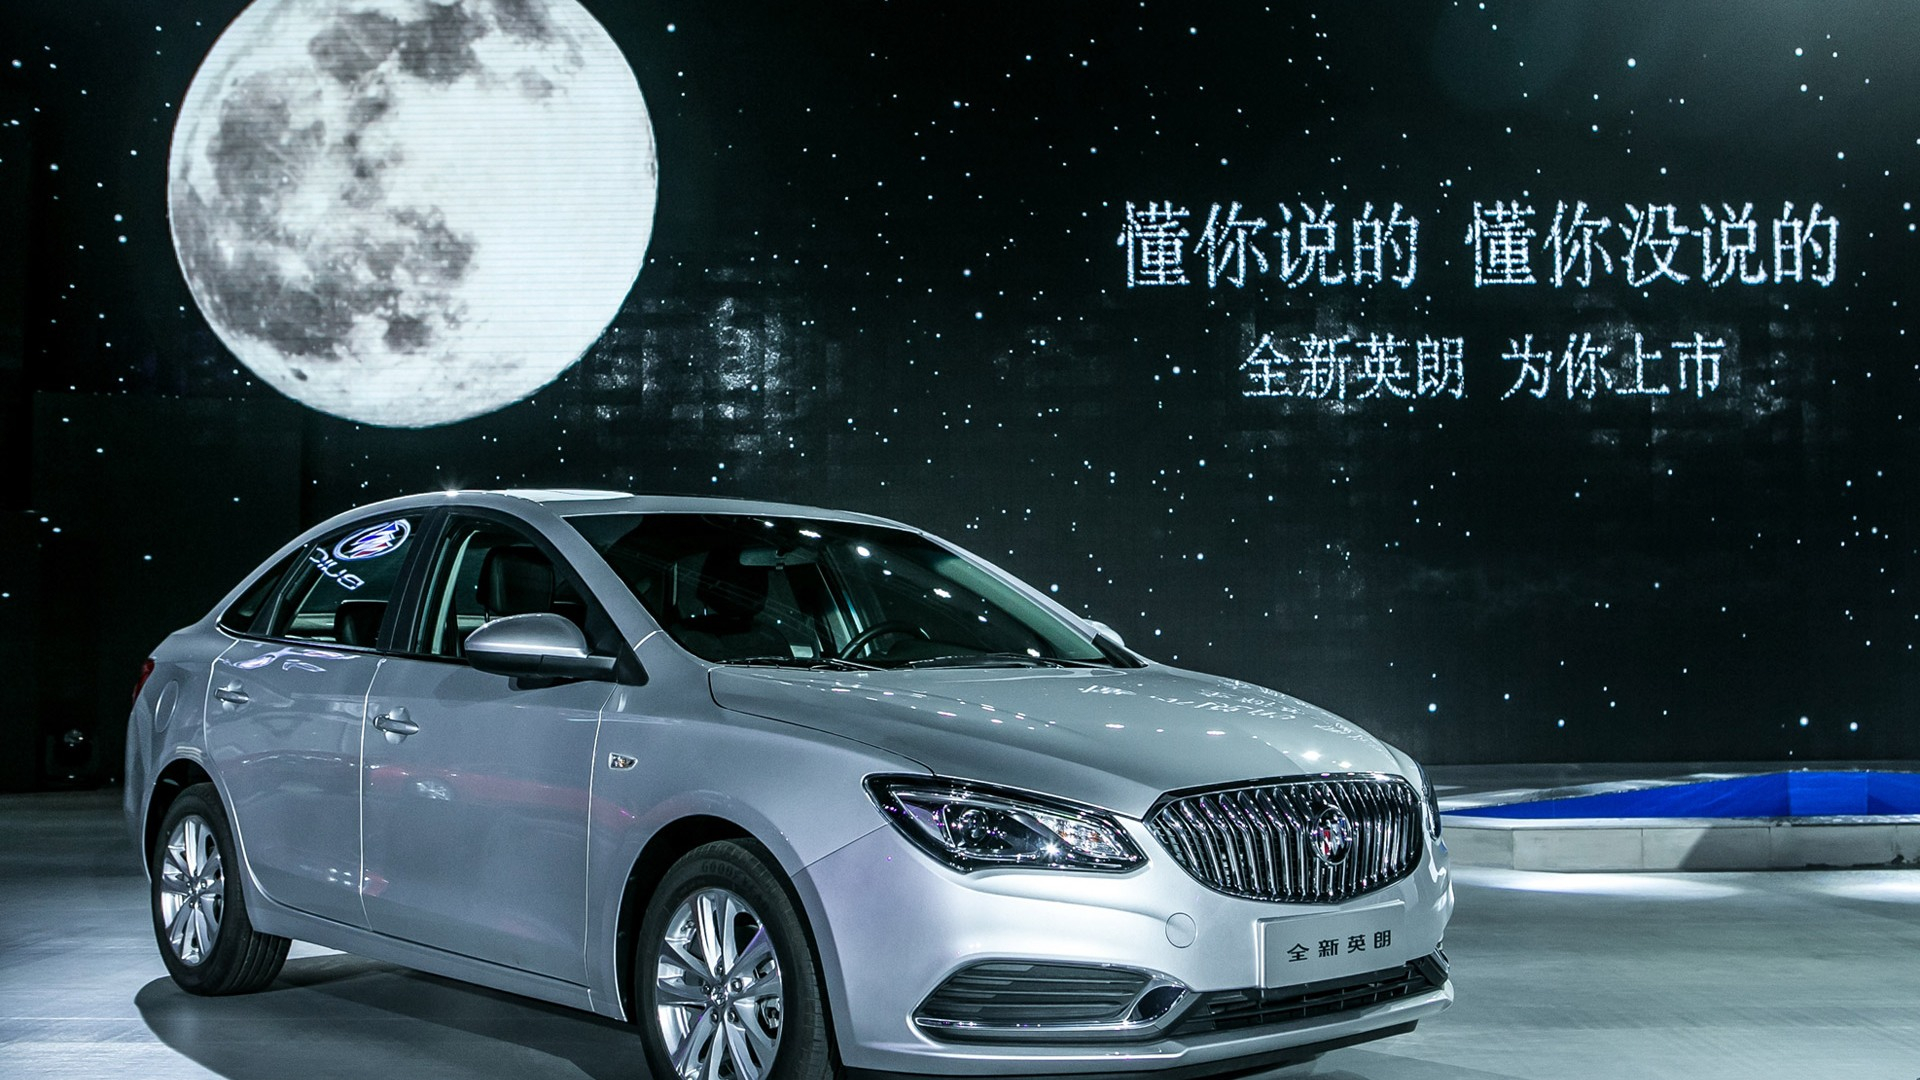 China's 2015 Buick Excelle Gt May Hint At Next Verano, Opel 2022 Buick Verano Length, Images, Manual Transmission